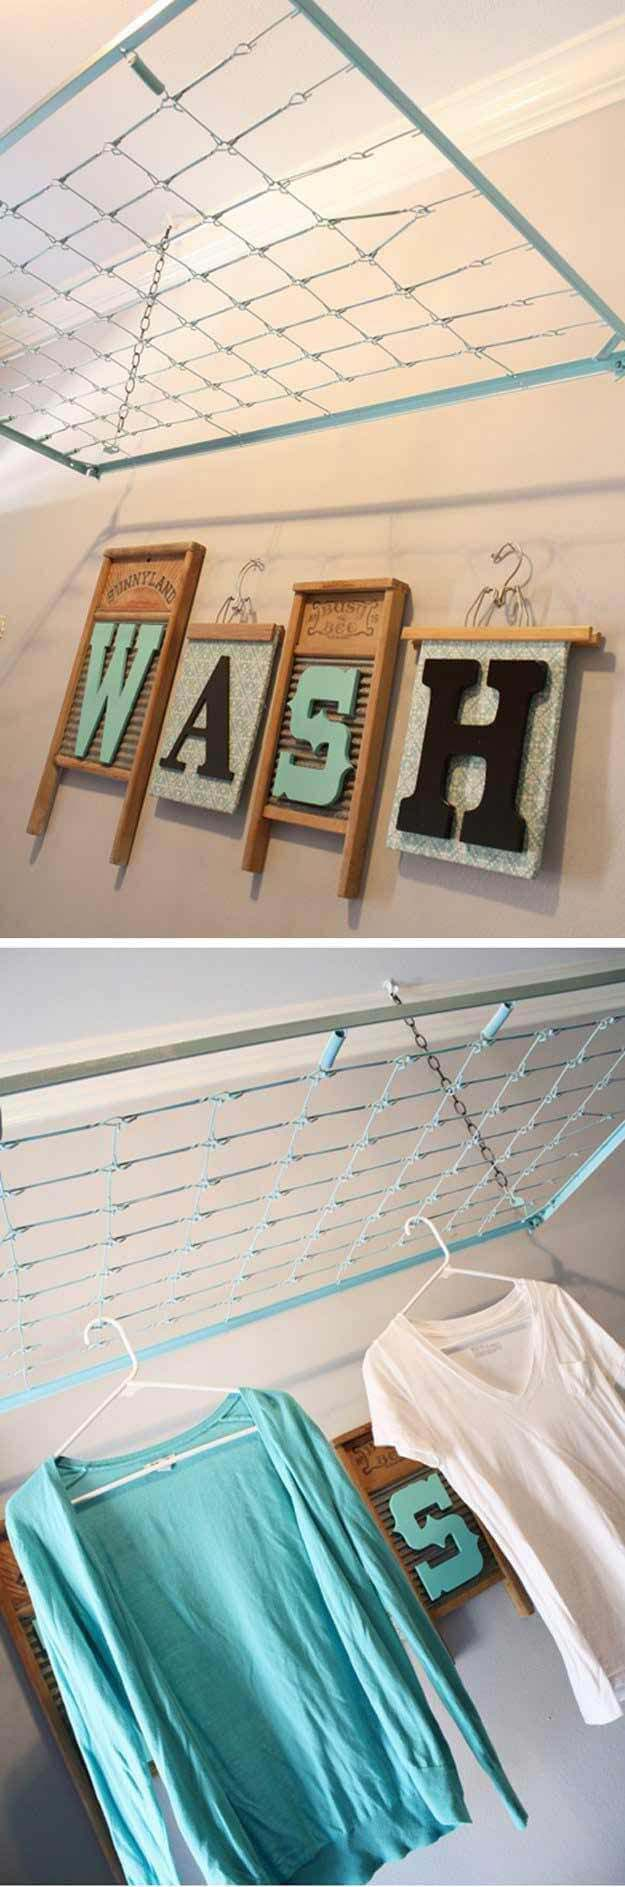 DIY Washboard  Wash Wall Art #laundry #vintage #decor #decorhomeideas